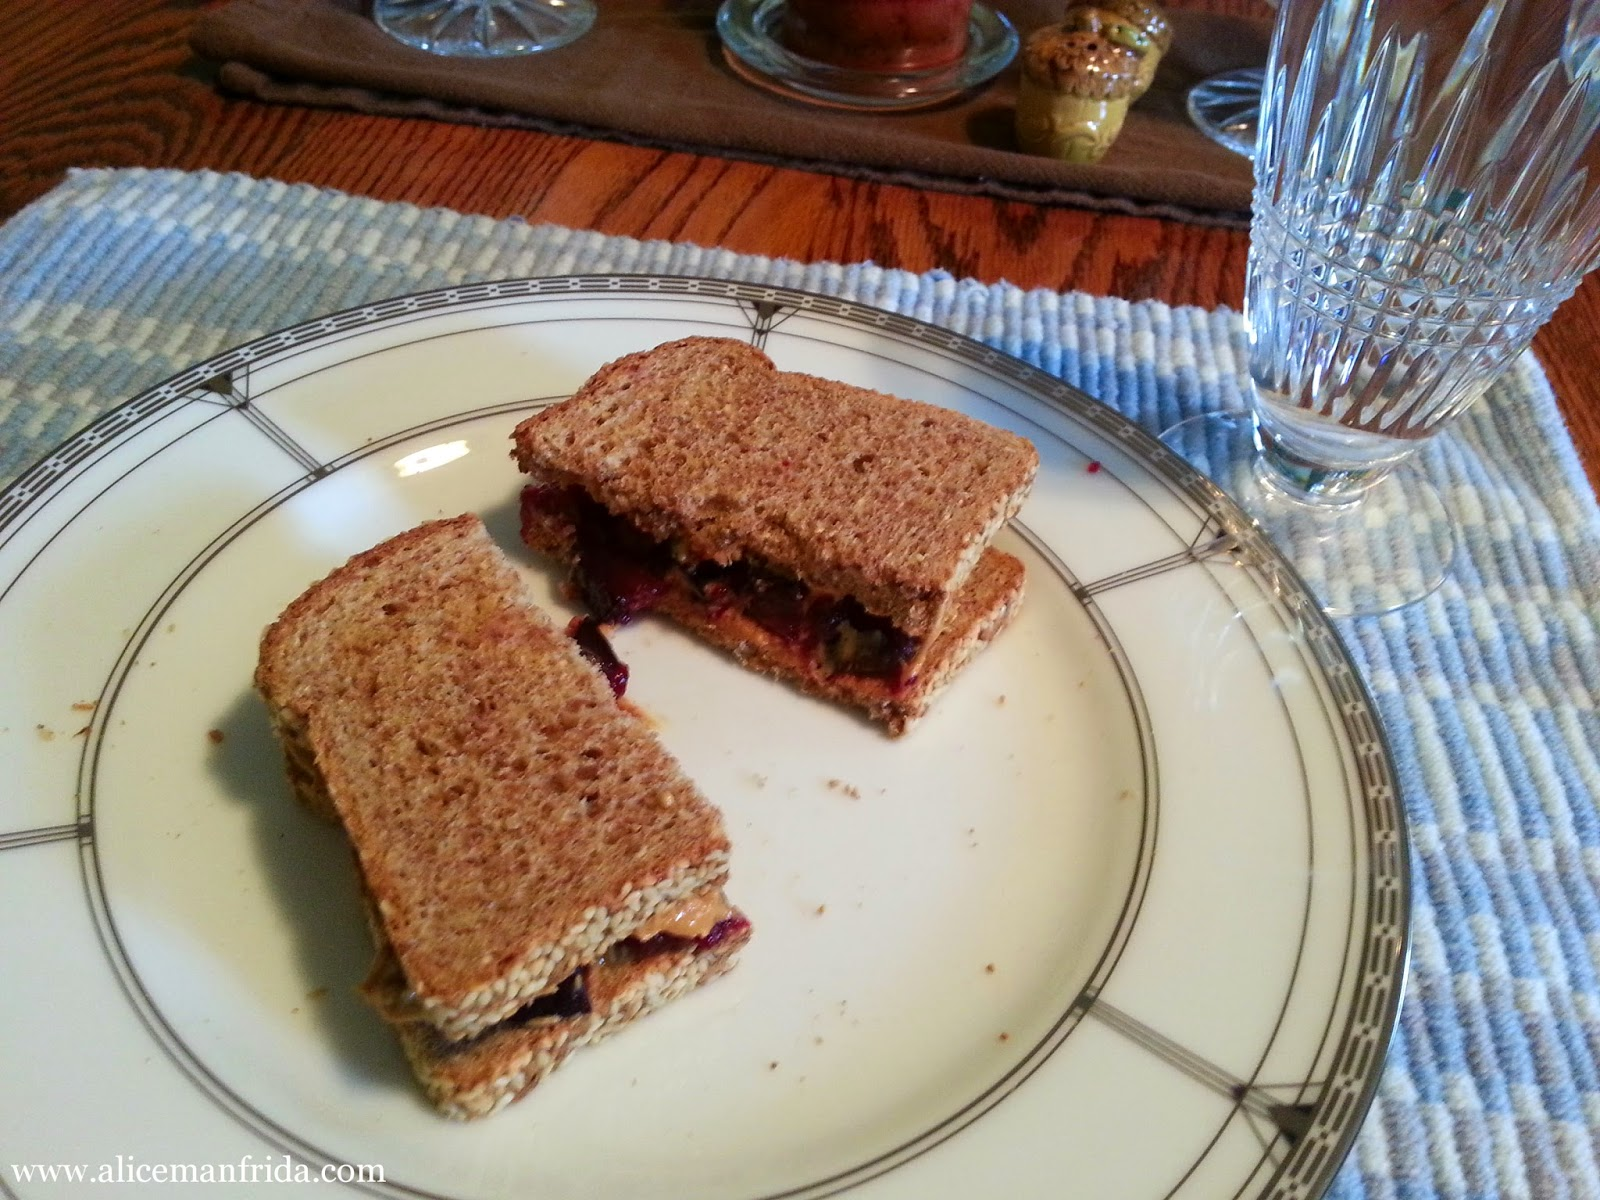 peanut butter, plum, sandwich, water, fruit, healthy, sprouted grain bread, sesame